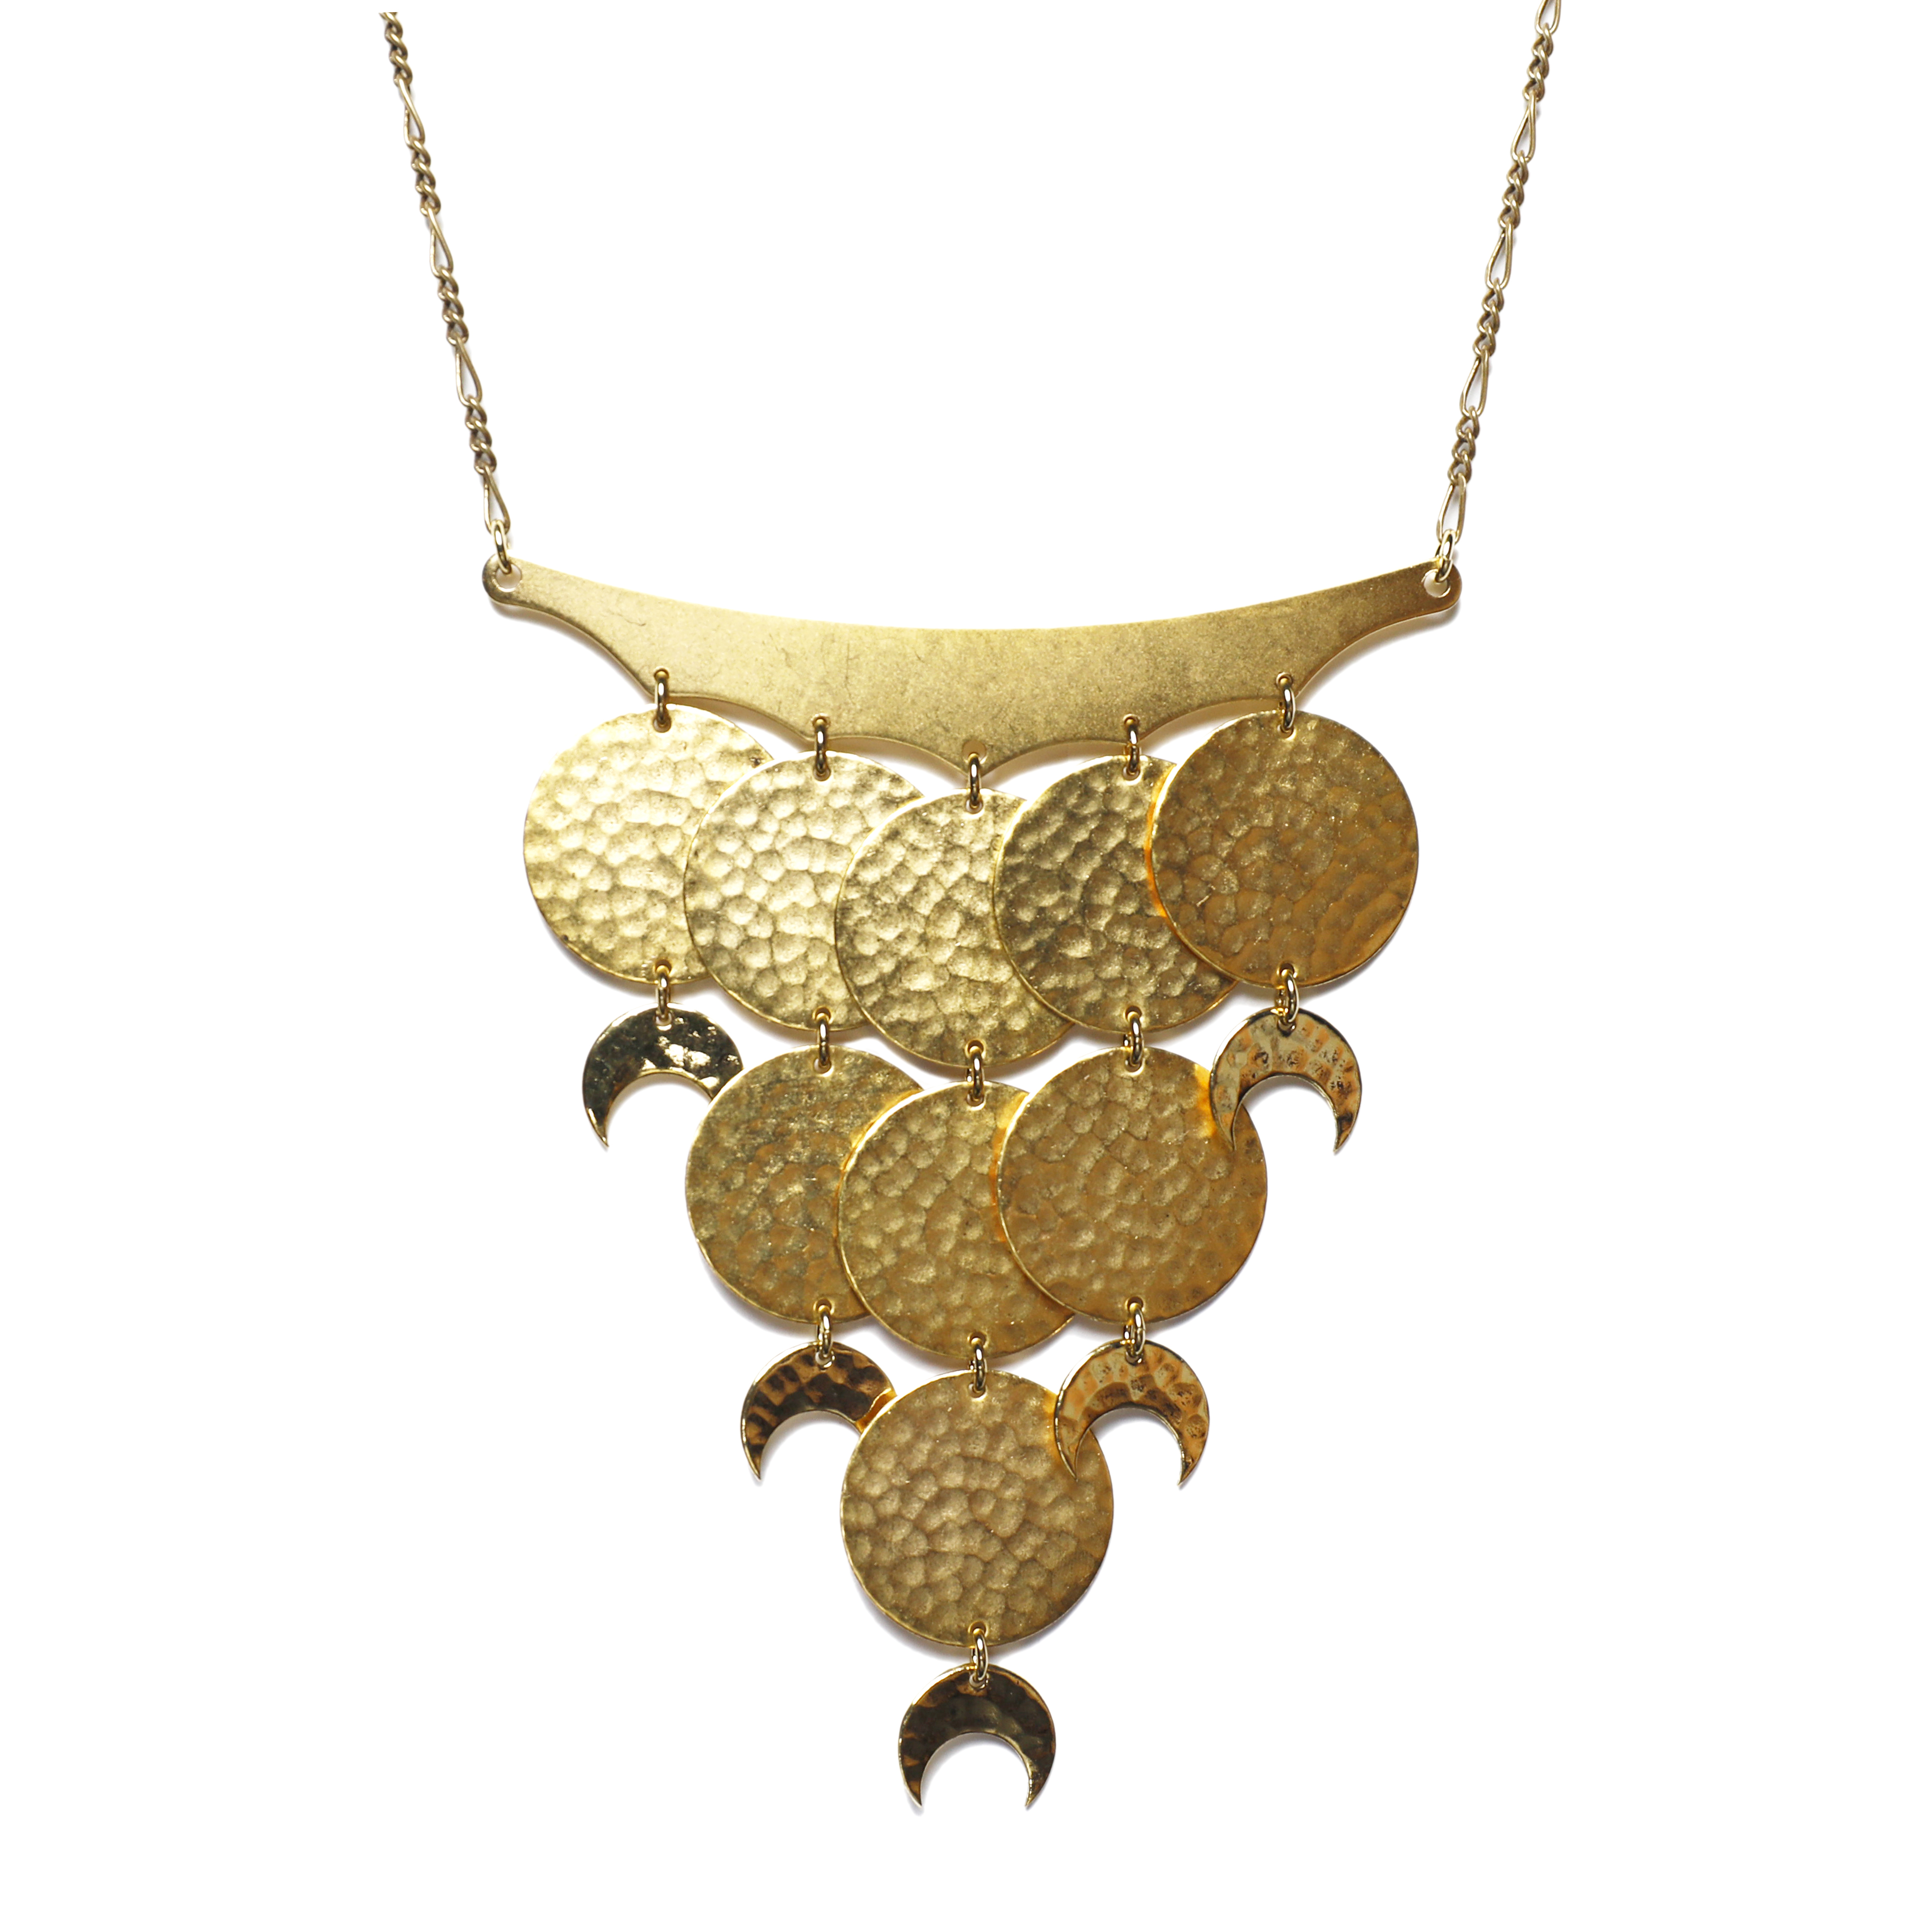 Moon phase cascade necklace. Gold statement necklace with circles and crescent moons.